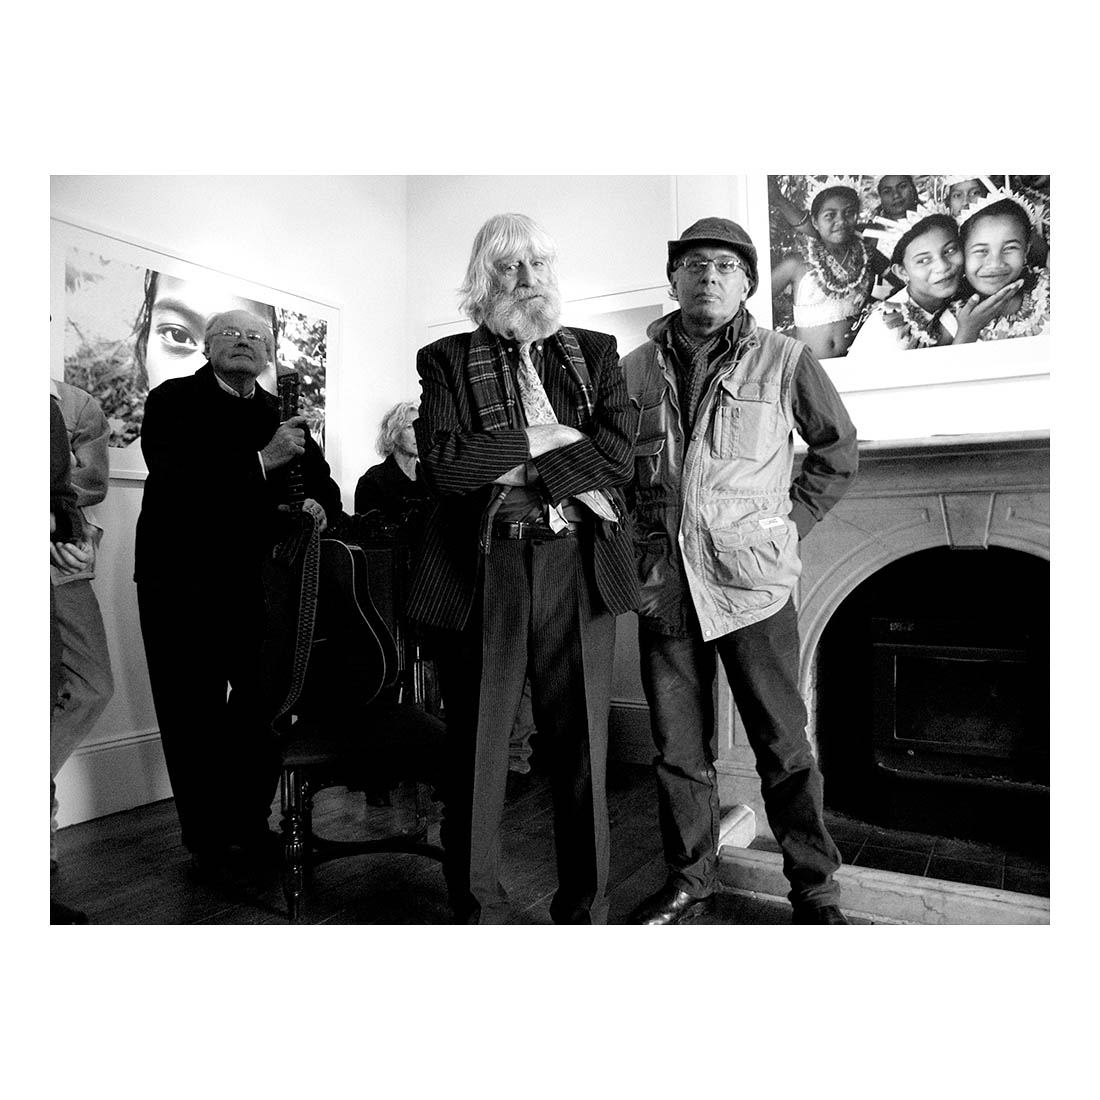 Reverend Gary     Shearston    , Martin Sharp and Jon Lewis, Goulburn, 2010    This was taken at Jon's exhibition opening at South Hill Gallery in Goulburn. It looks posed but it's not. Artist Martin Sharp was giving the opening speech. Gary Shearston played a song at the opening and did a whole gig afterwards. I'd known Jon for a few years, I first met him when I was working at the National Museum back in 2000, I'd met Martin before and this was the only time I met Gary. They've all done great work that has influenced my own art. It was fantastic to get this photo with all three of them together.